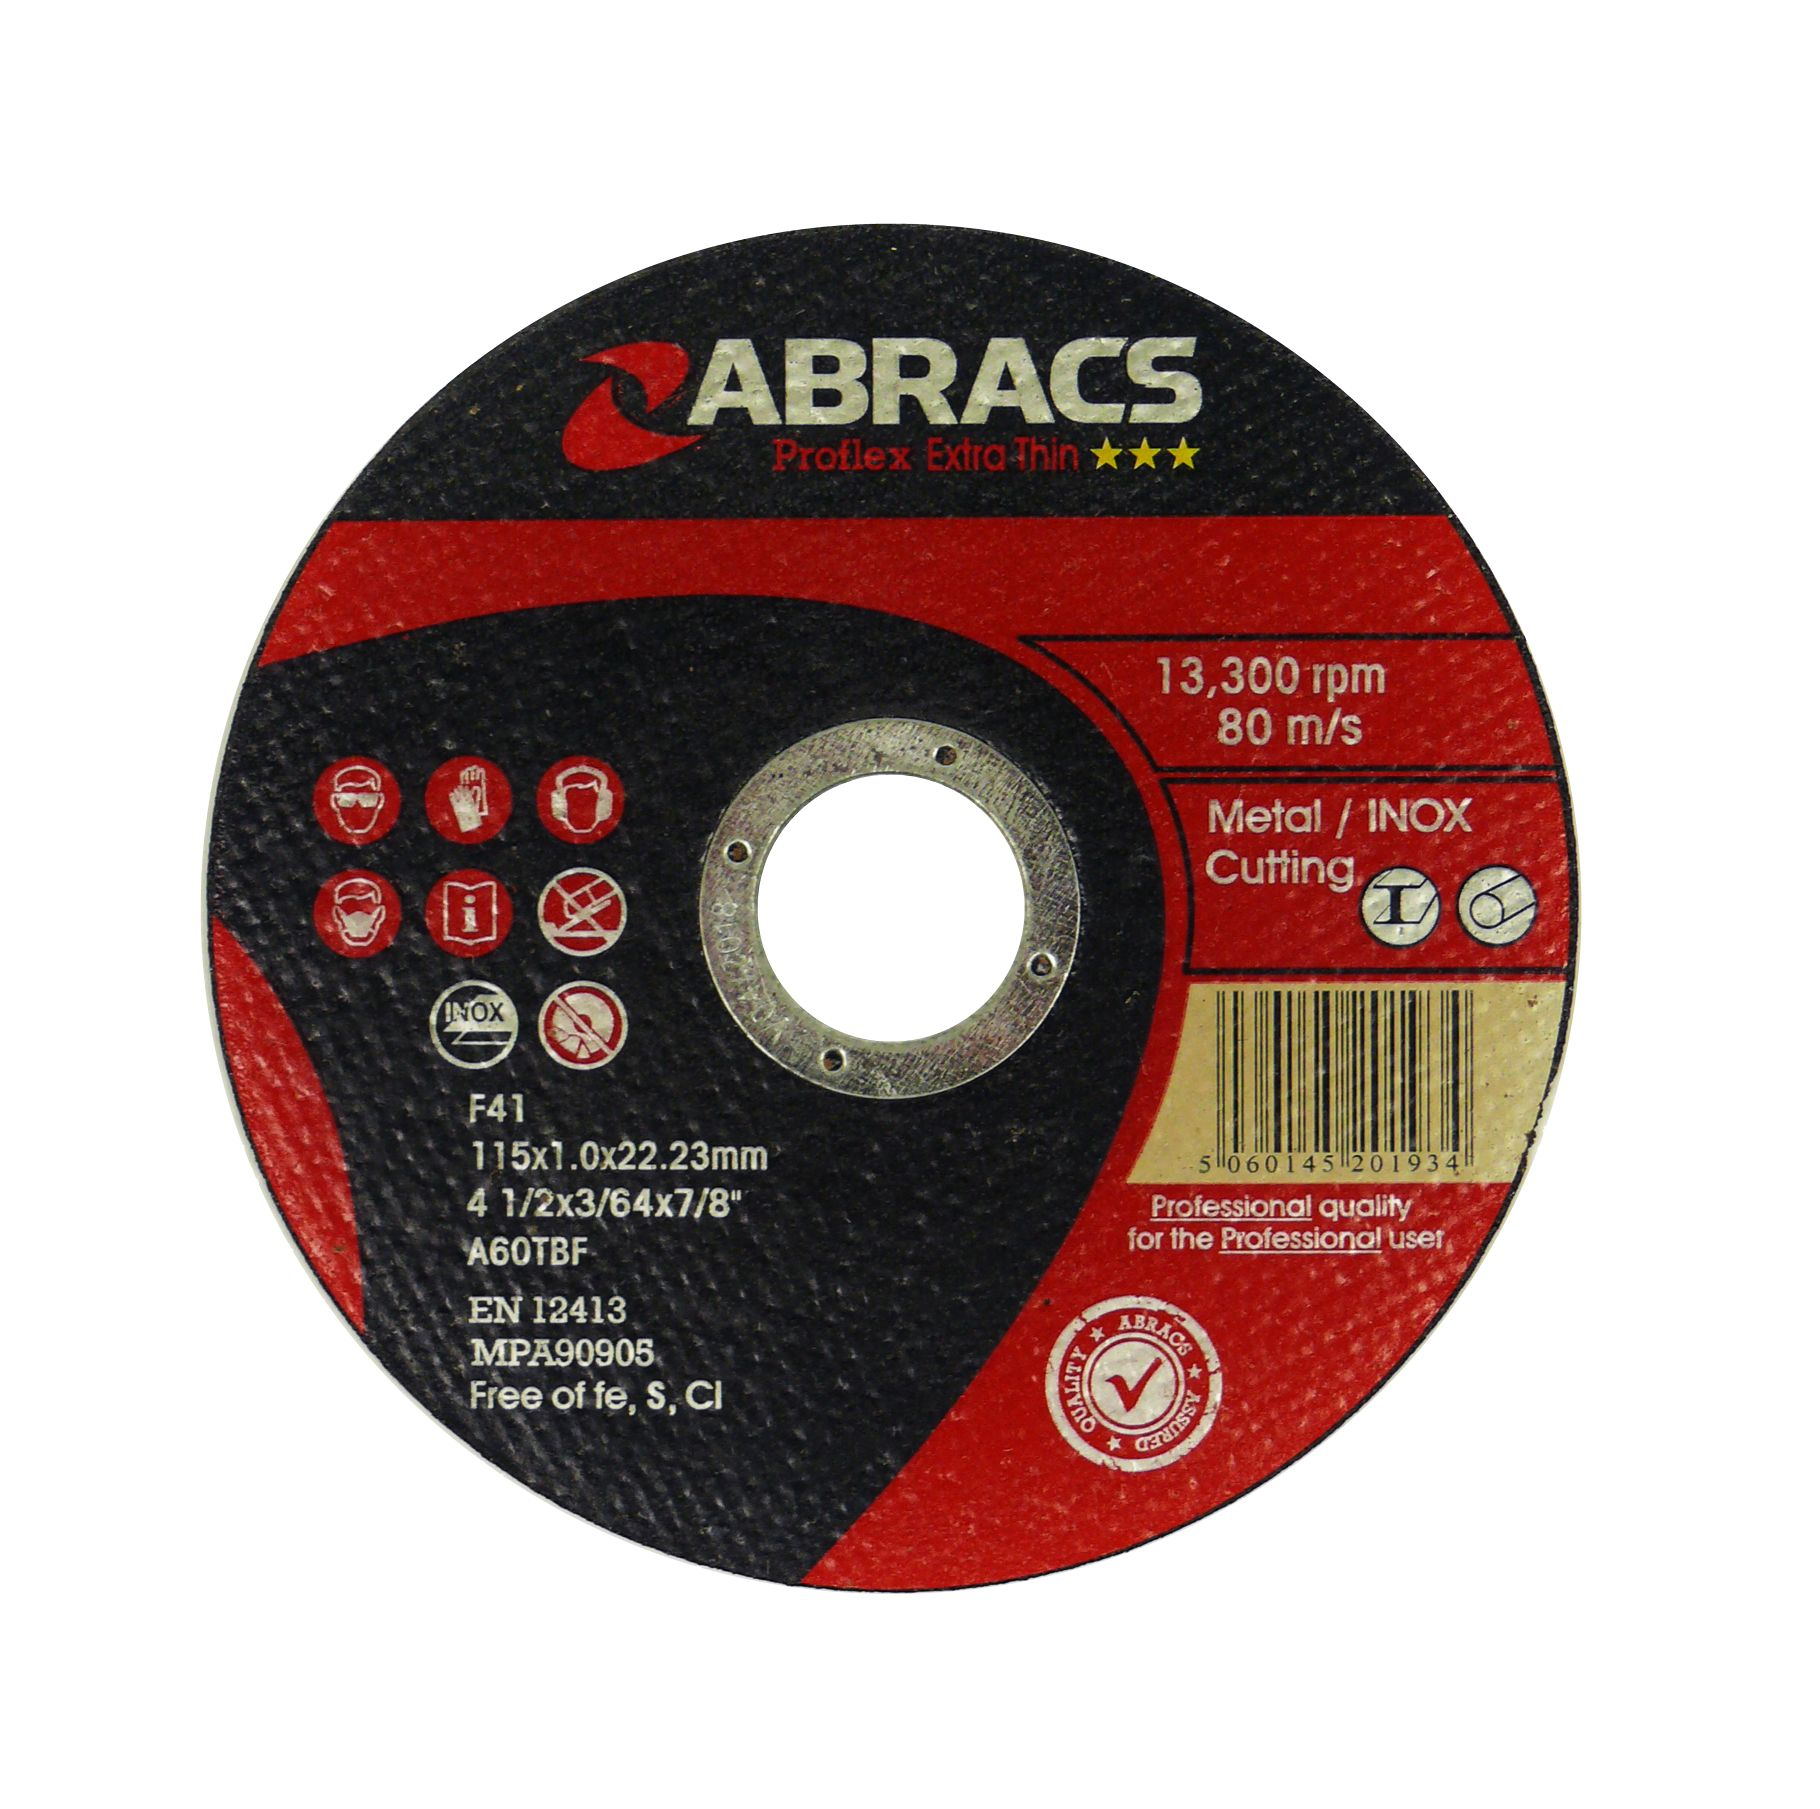 THIN METAL CUTTING DISC 115 X 1.0MM